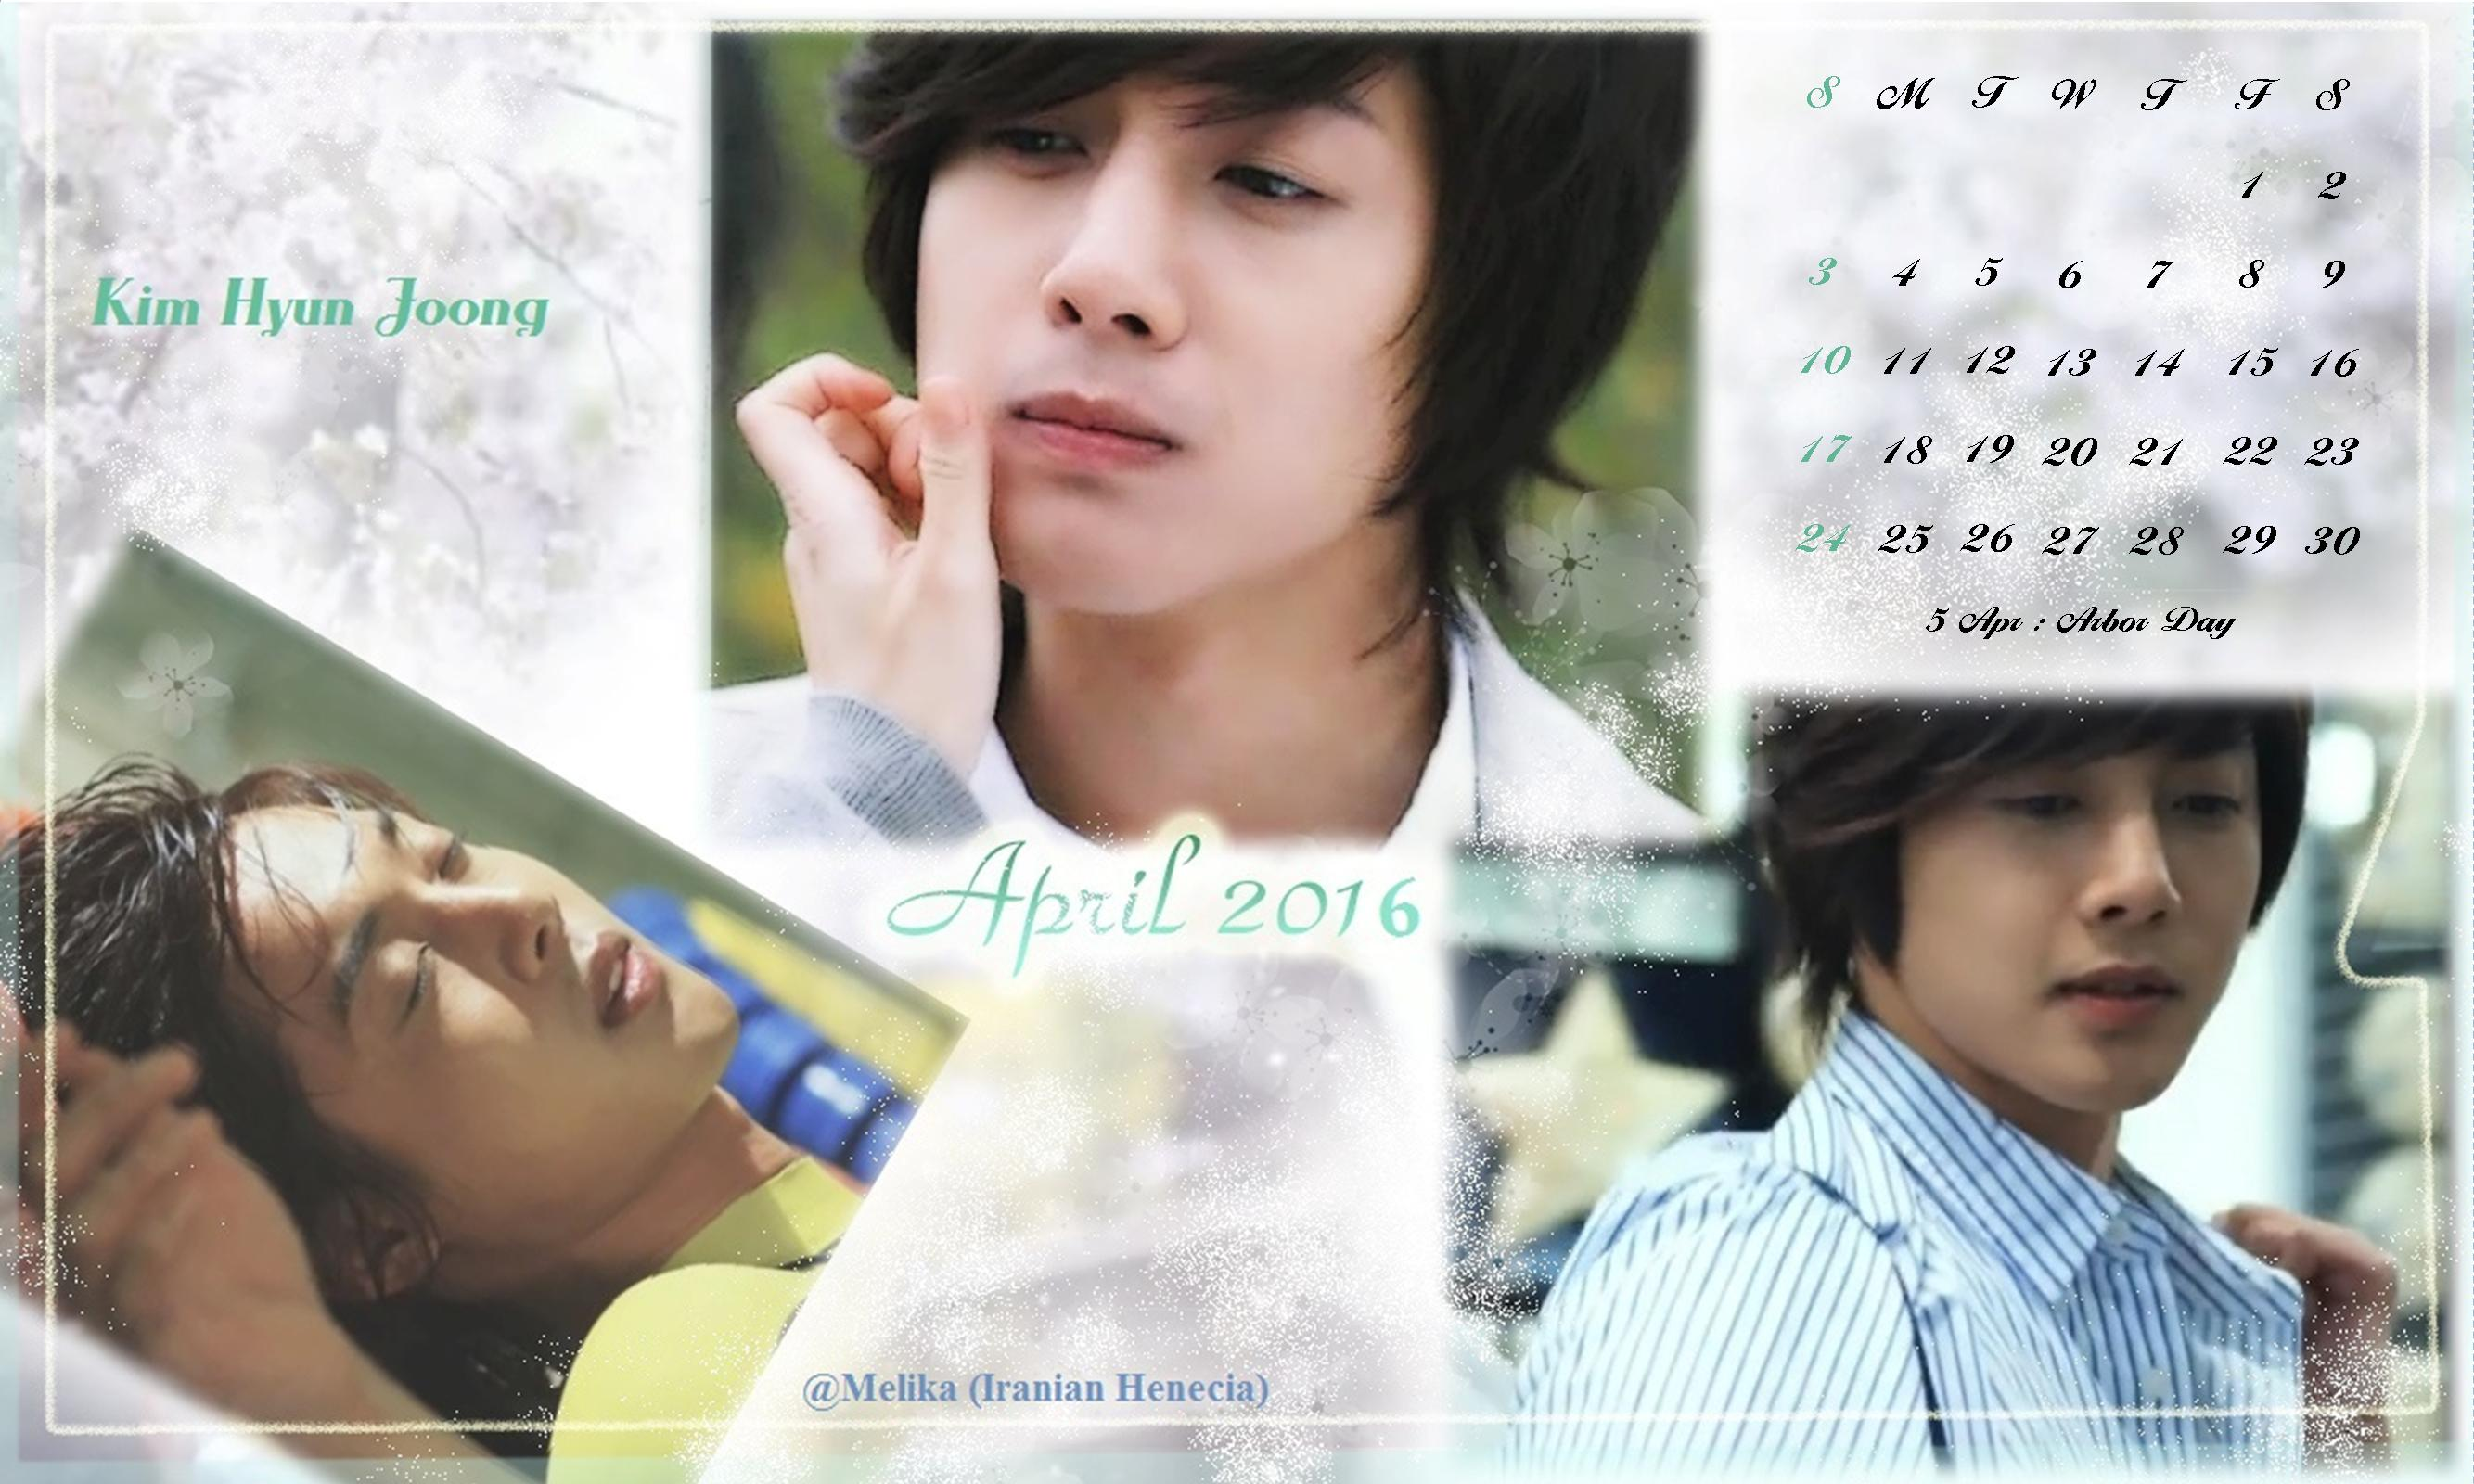 Calendar of April 2016 - Fanart by Melika